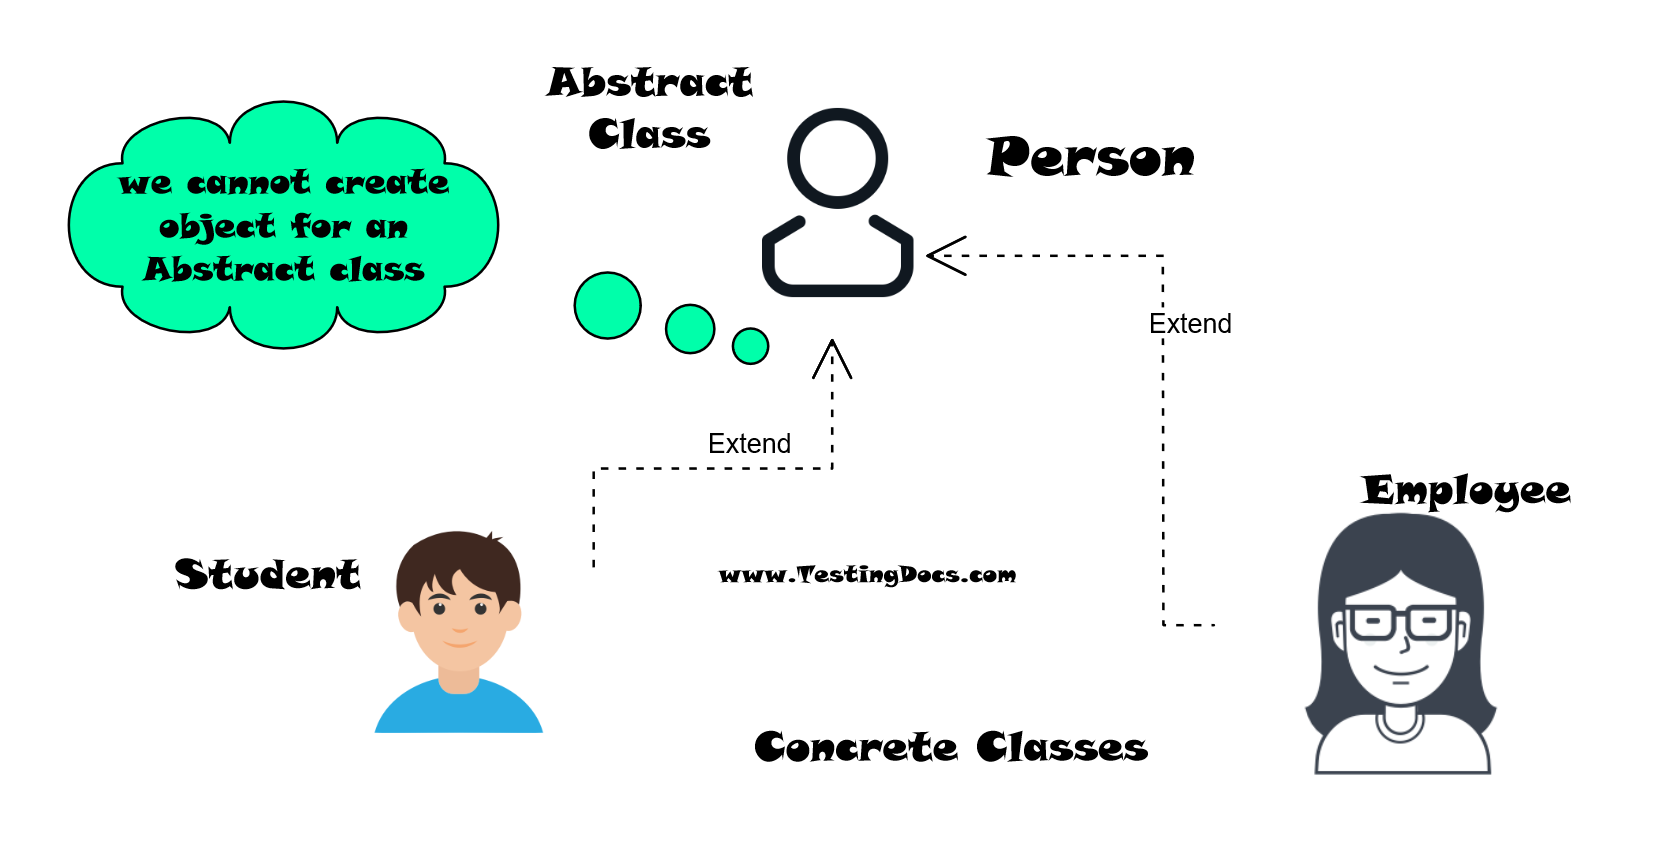 Abstract class vs Concreate Classes